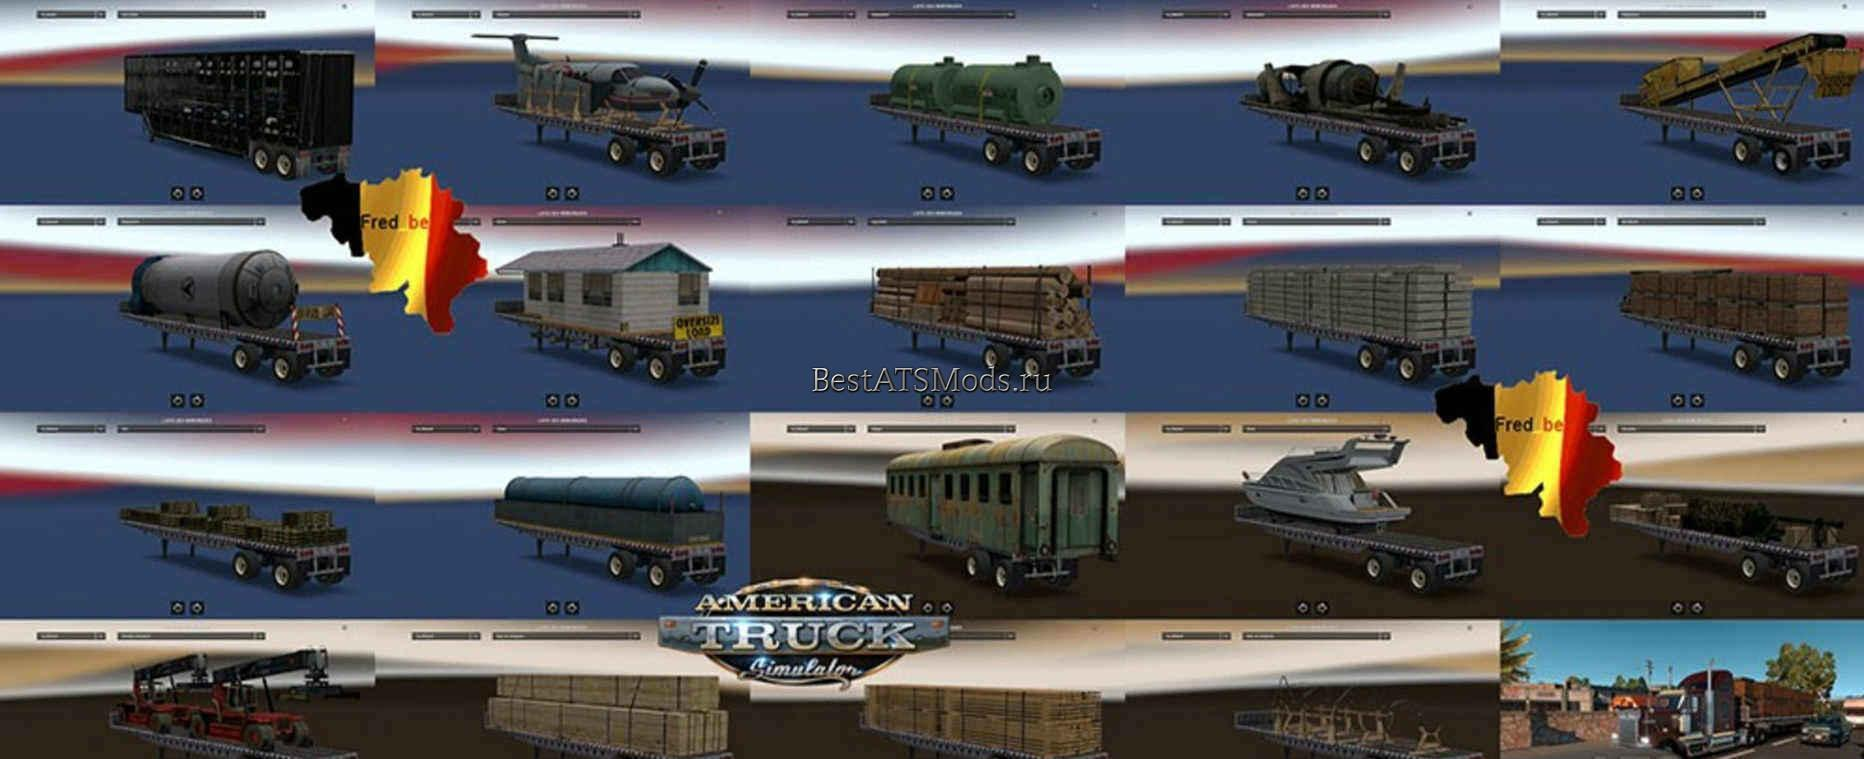 rsz_Мод_пак_прицеп_trailer_pack_overweight_v2_for_american_truck_simulator